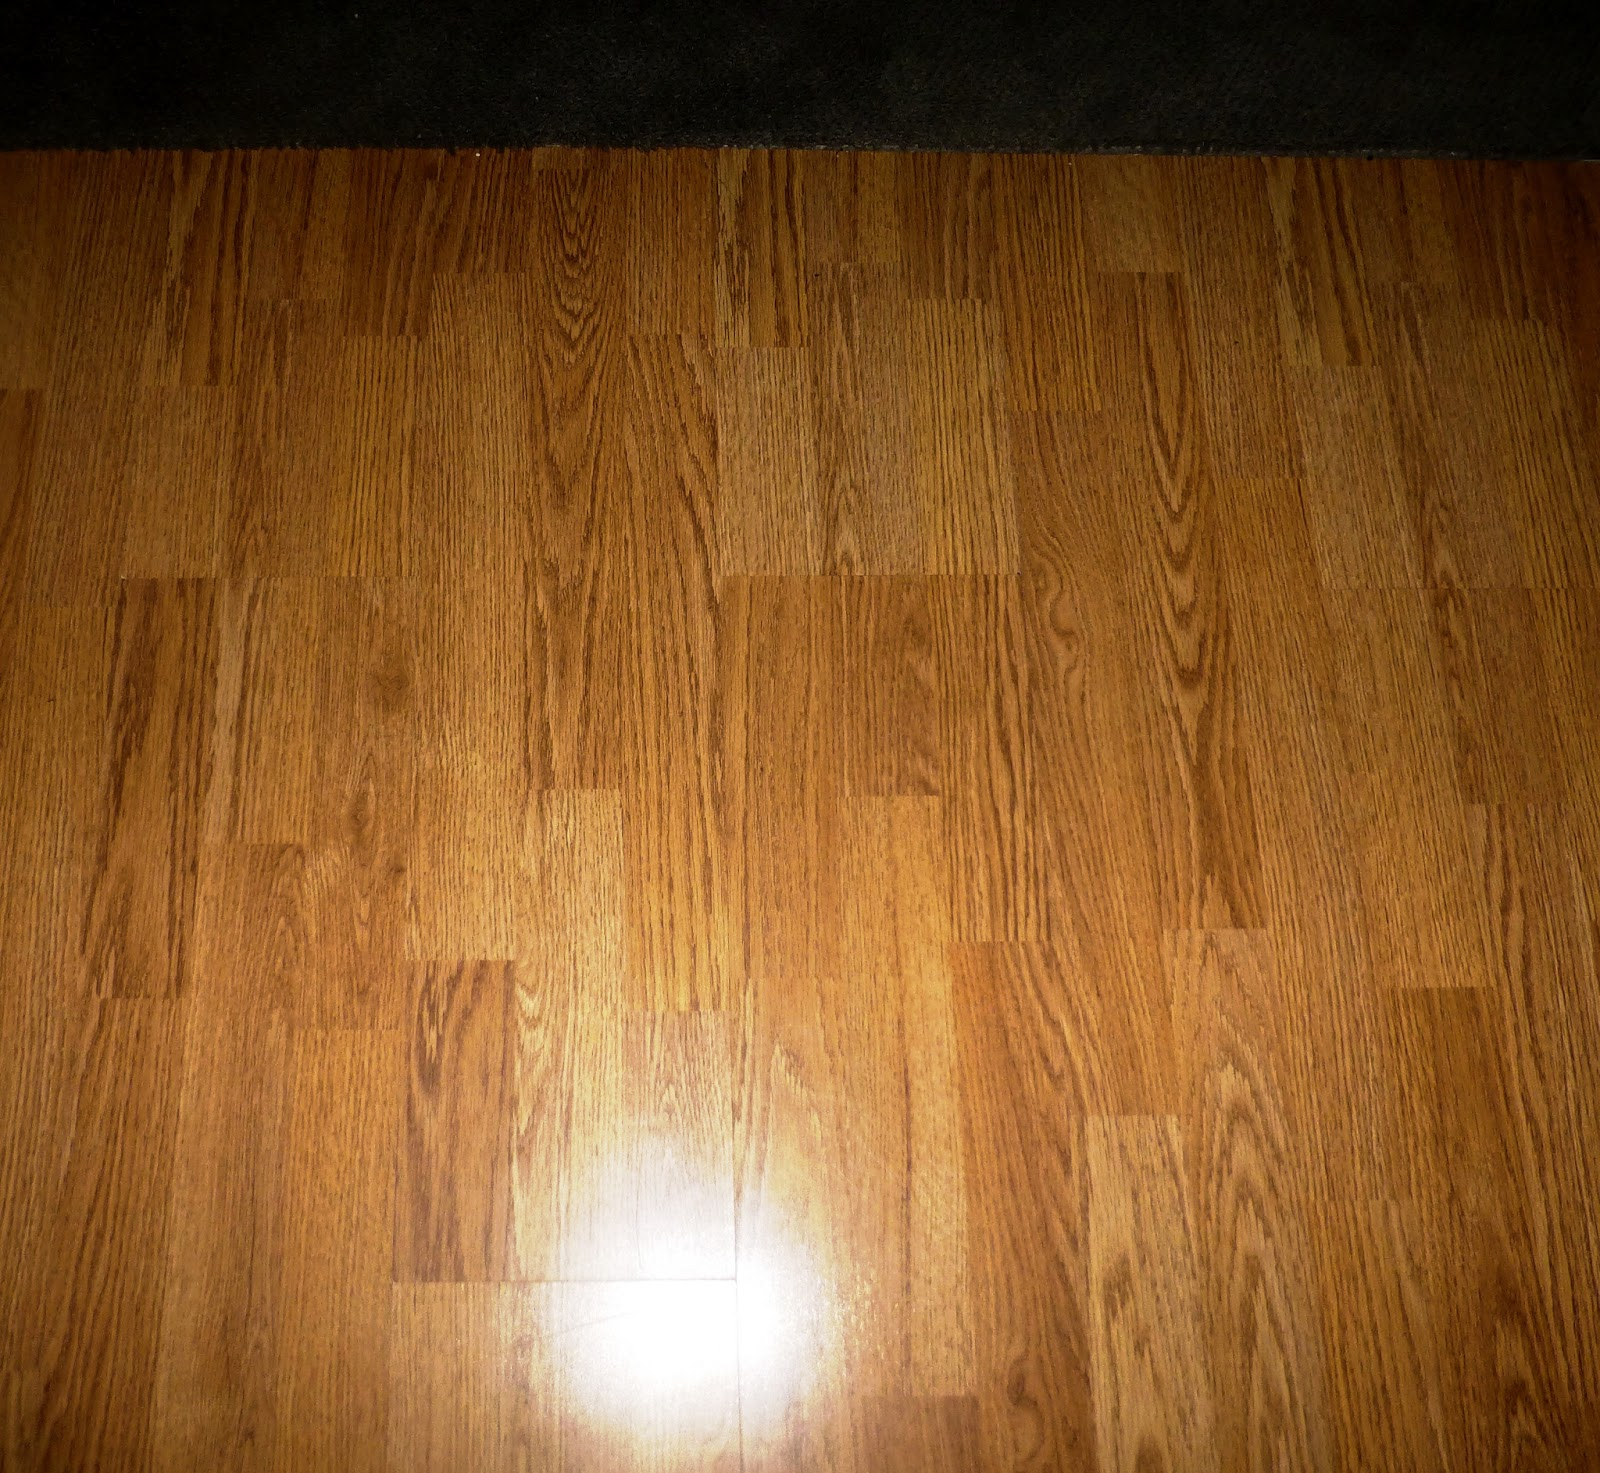 Http Flooringideashome Blogspot Co Uk 2015 09 Dark Hardwood Floors Html